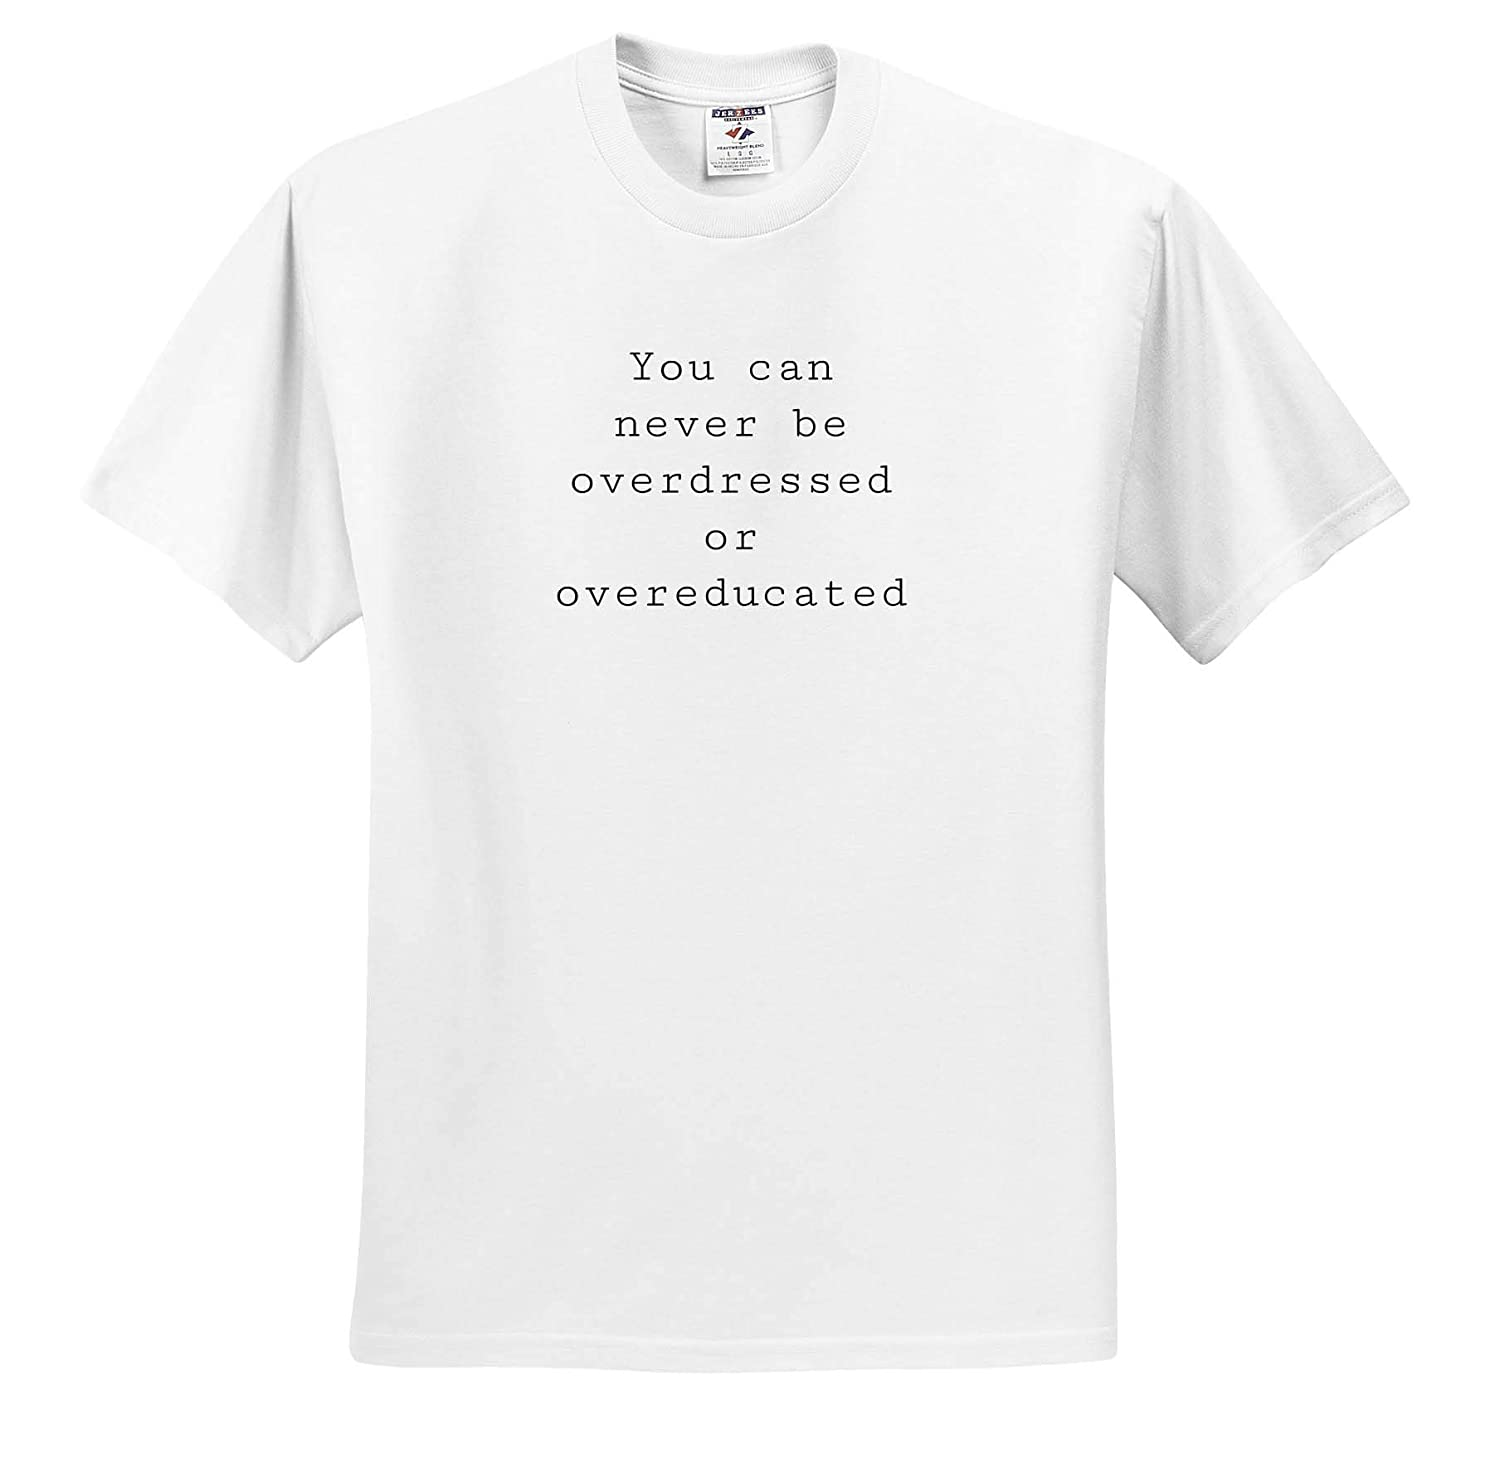 Adult T-Shirt XL ts/_317798 3dRose Gabriella-Quote Image of You Can Never Be Overdressed Or Overeducated Quote